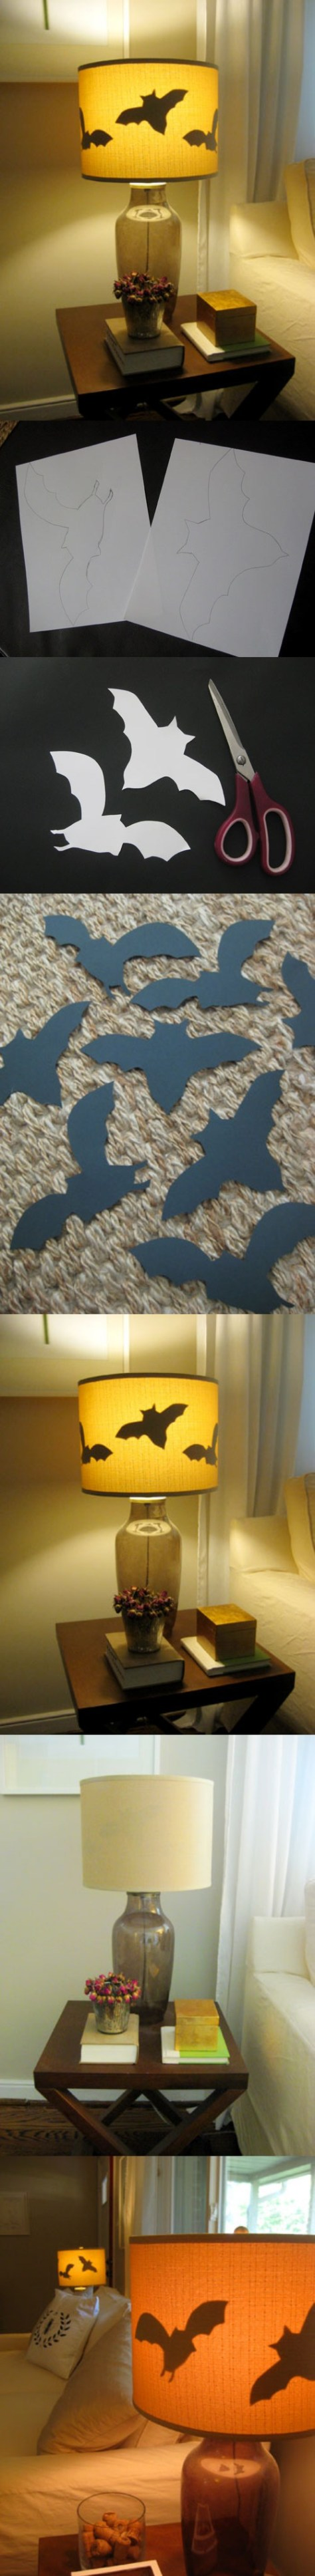 5. Paper Bats For Lamp Shades